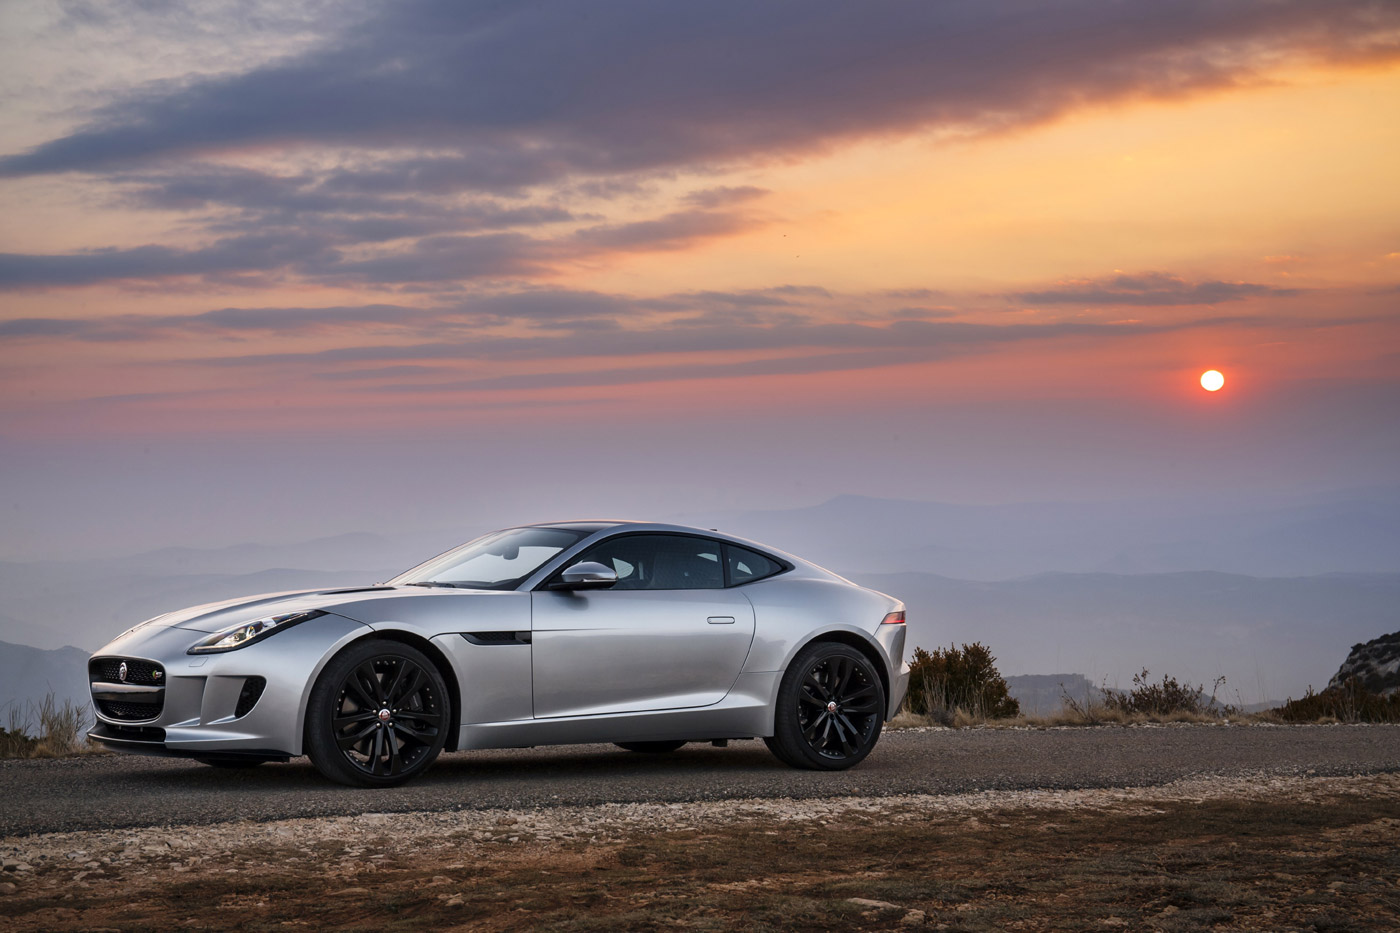 Rhodium Silver brings out the taut lines of the Jaguar F-TYPE Coupé ...